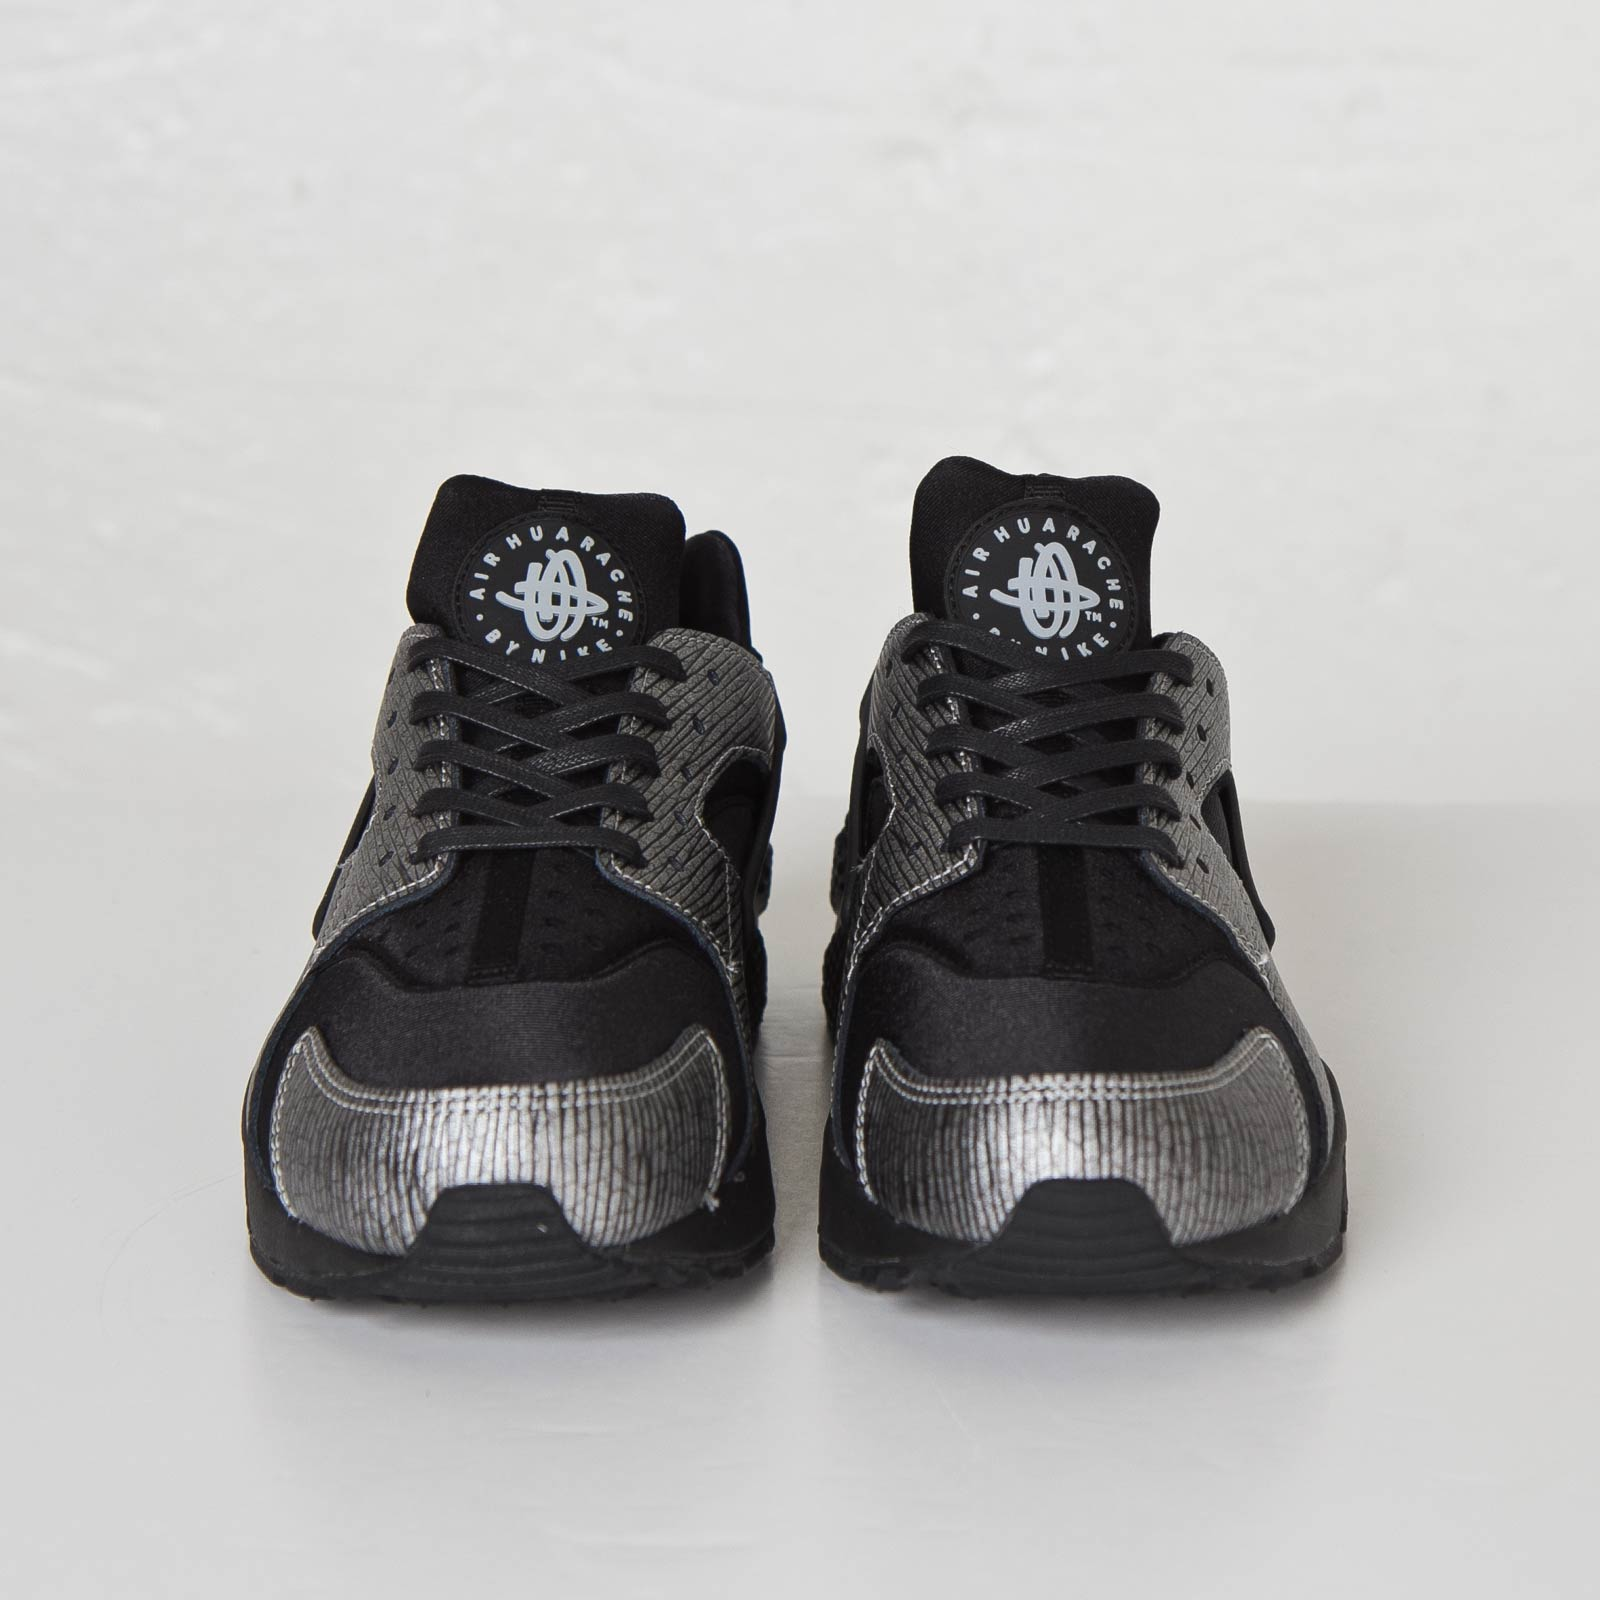 quality design c97c1 2926b Nike Wmns Air Huarache Run Premium Nike Wmns Air Huarache Run Premium ...